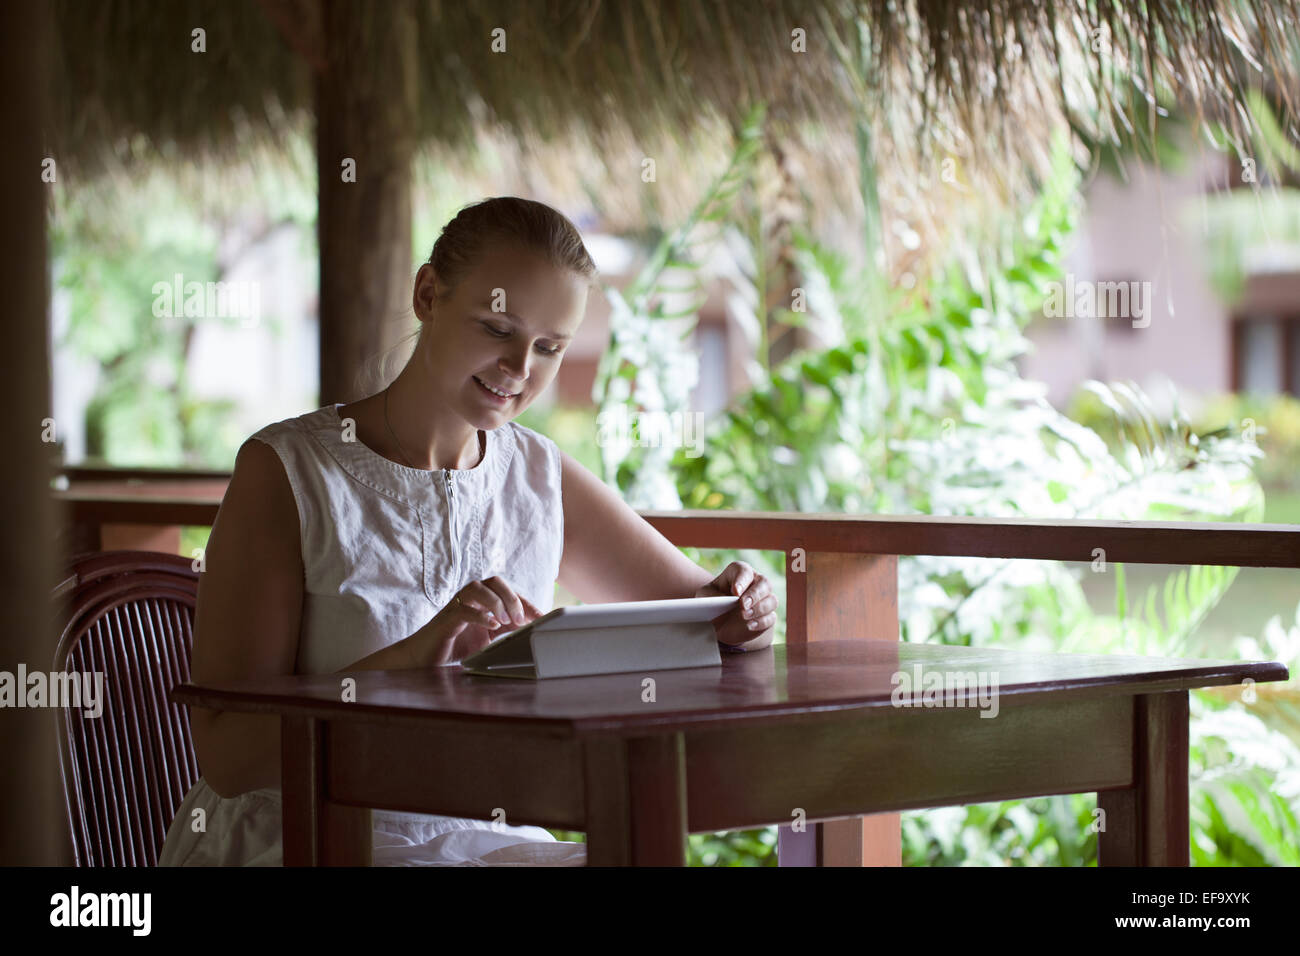 Smiling woman using tablet computer in cafe pendant ses vacances Photo Stock